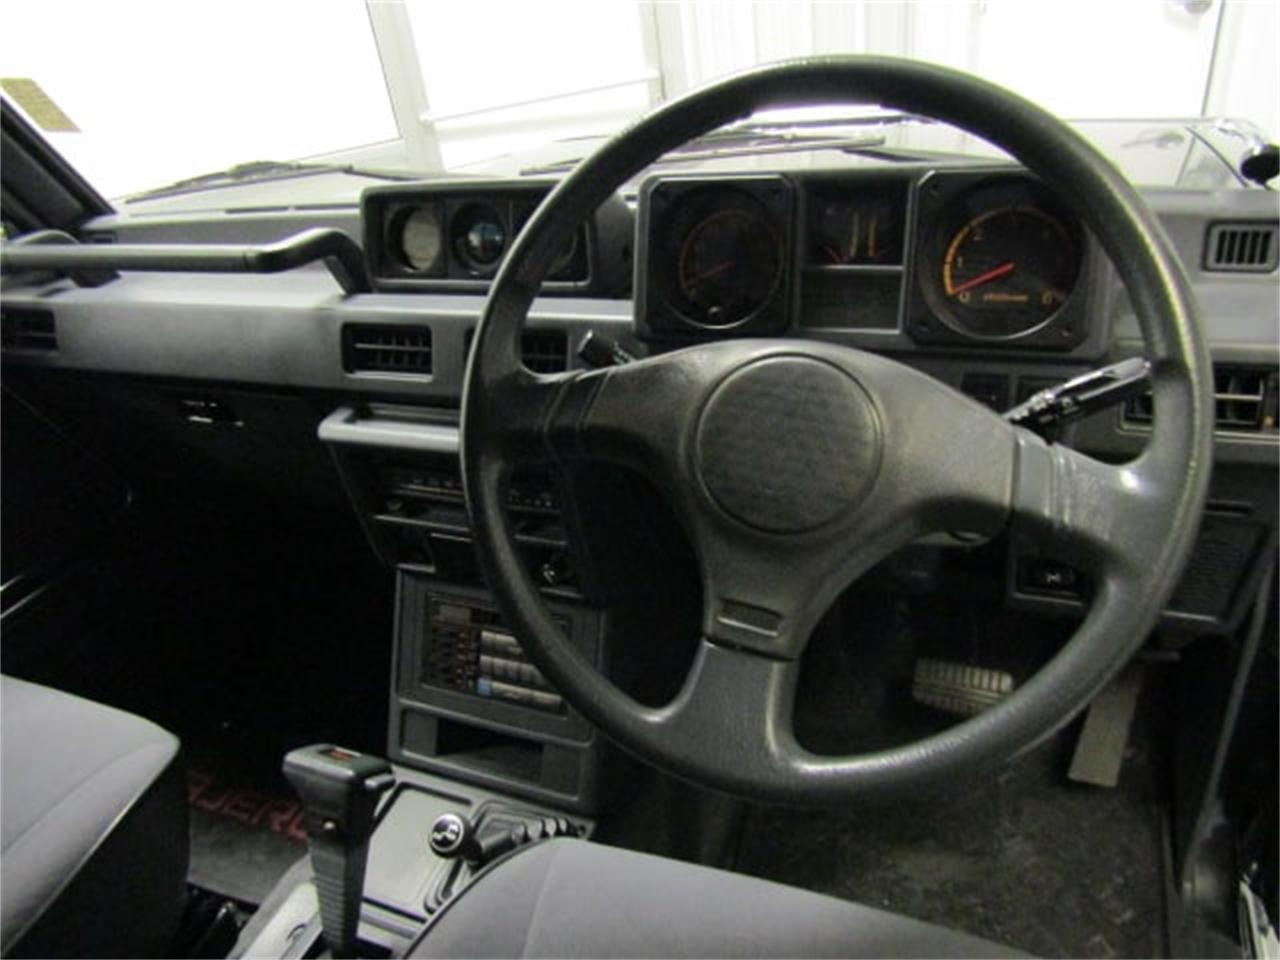 Large Picture of '89 Pajero - $8,900.00 Offered by Duncan Imports & Classic Cars - LI1X